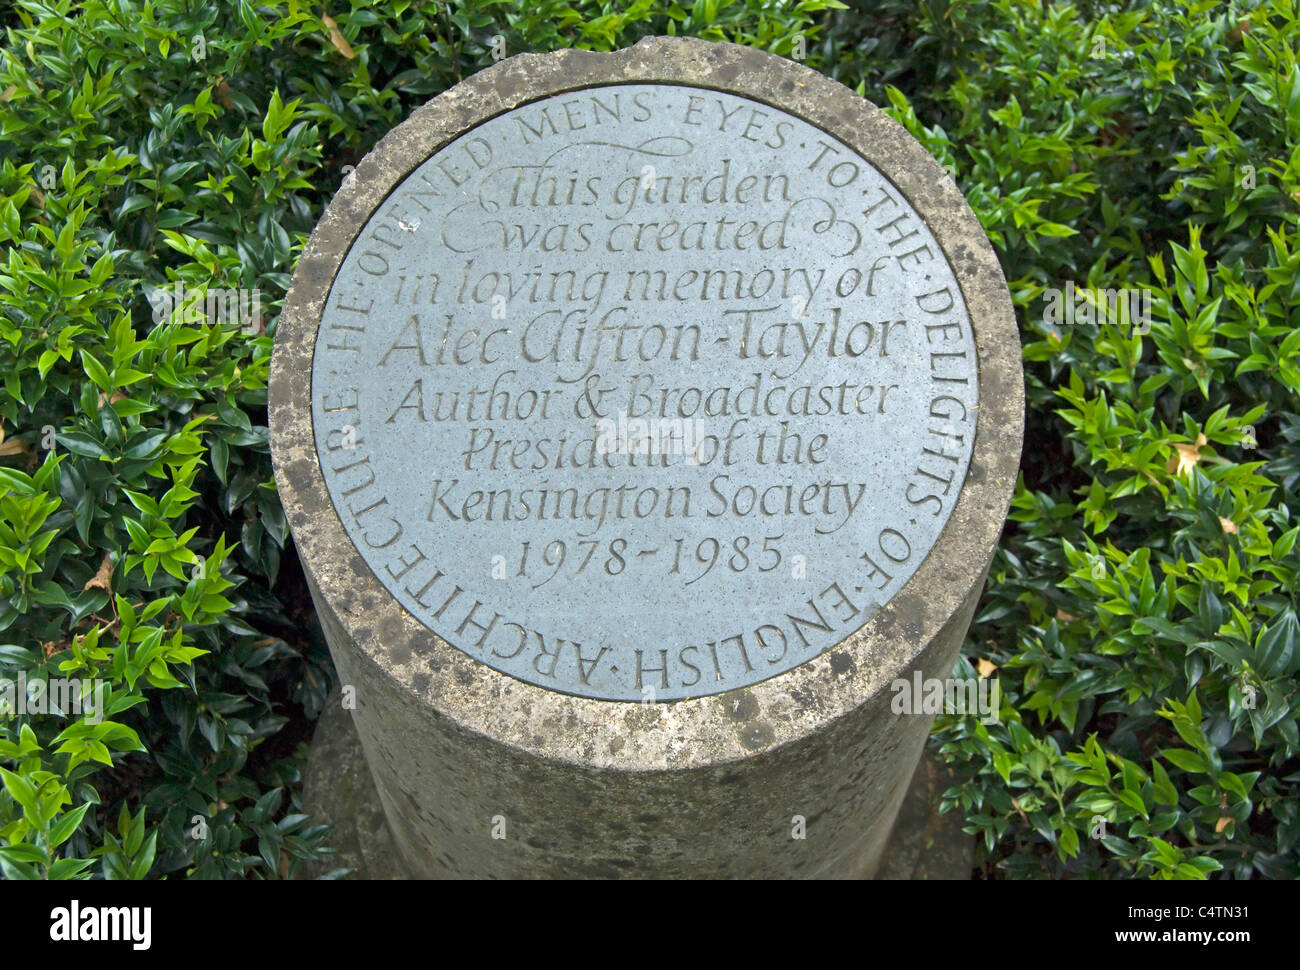 memorial stone to alec clifton-taylor, writer and broadcaster, and inspiration for the garden in which the memorial - Stock Image